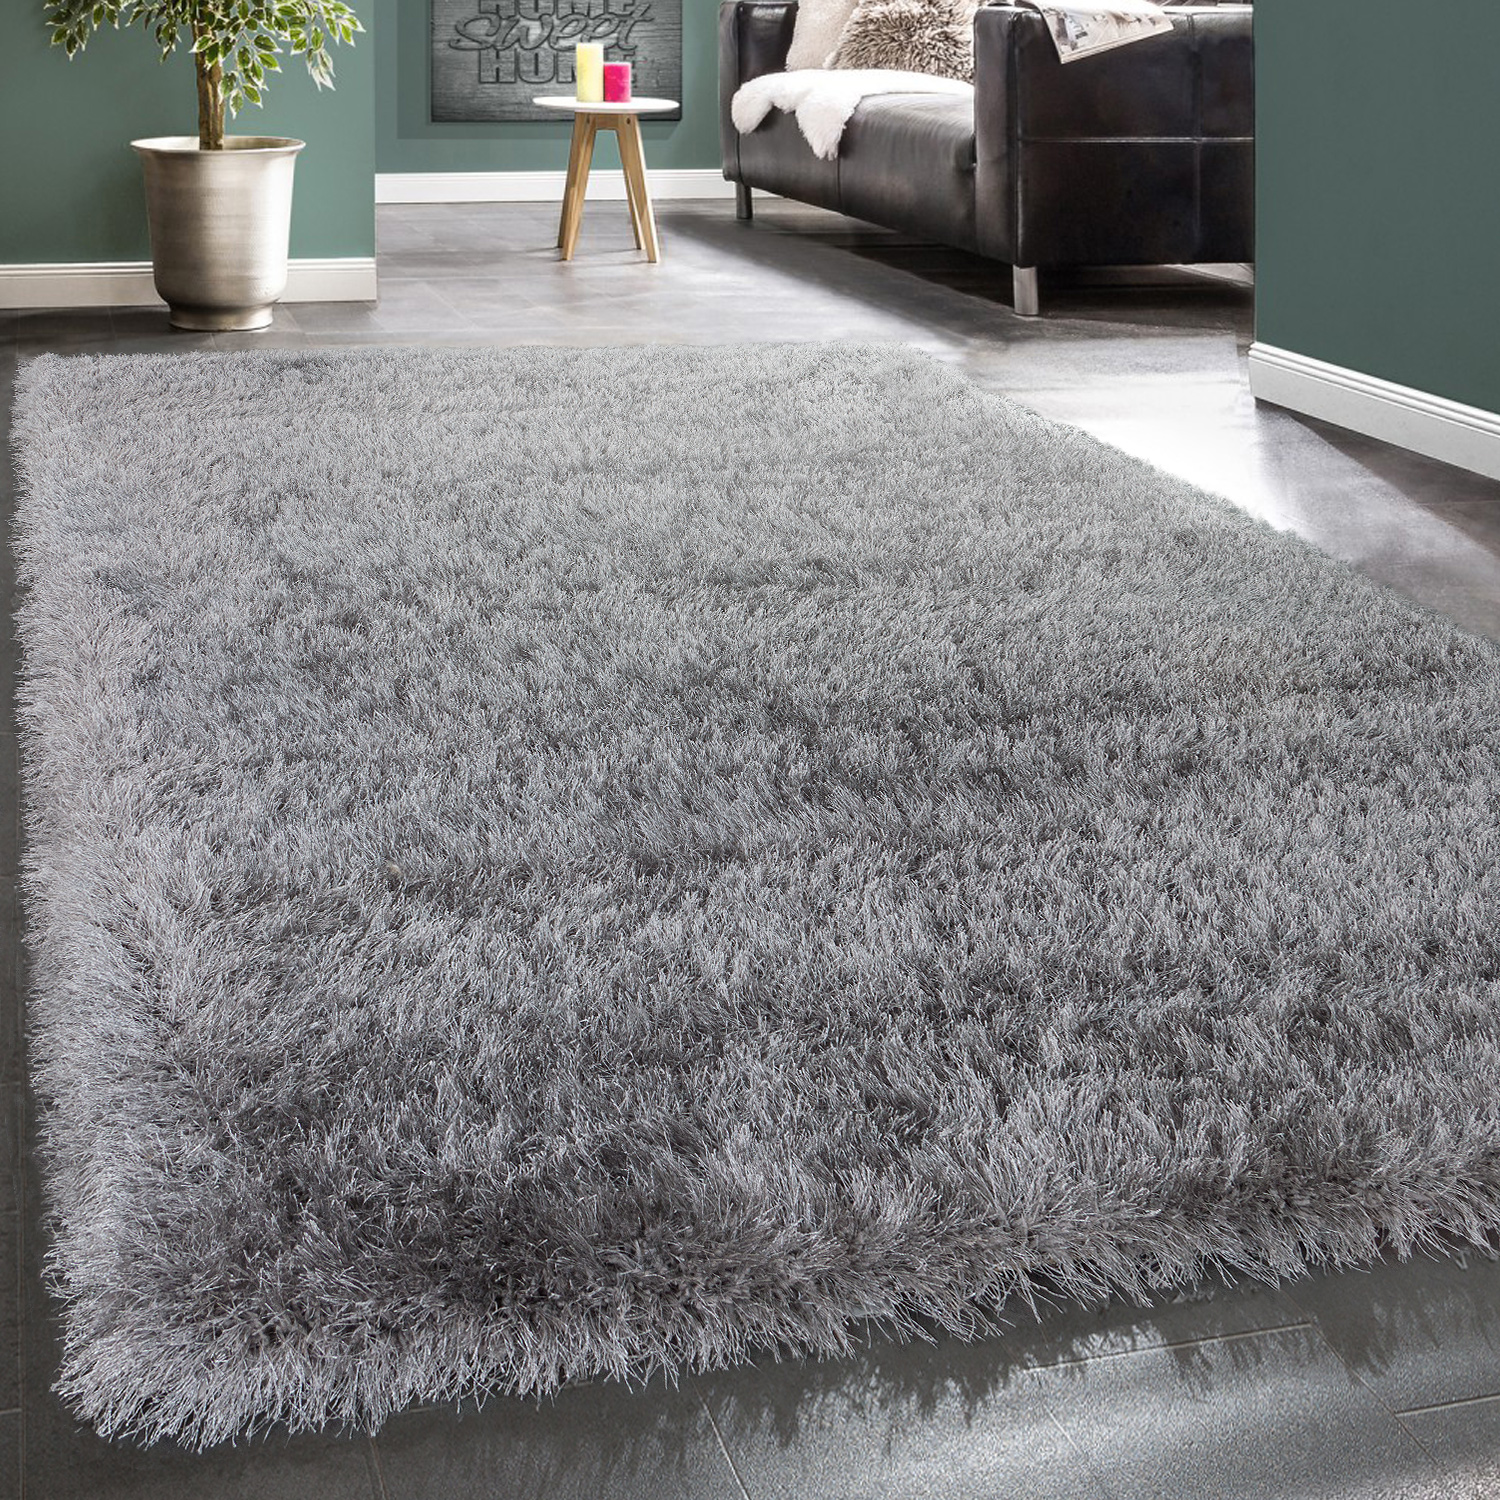 Shaggy Deep-Pile Rug Modern Soft Yarn Gloss Fibres In Plain Light Grey